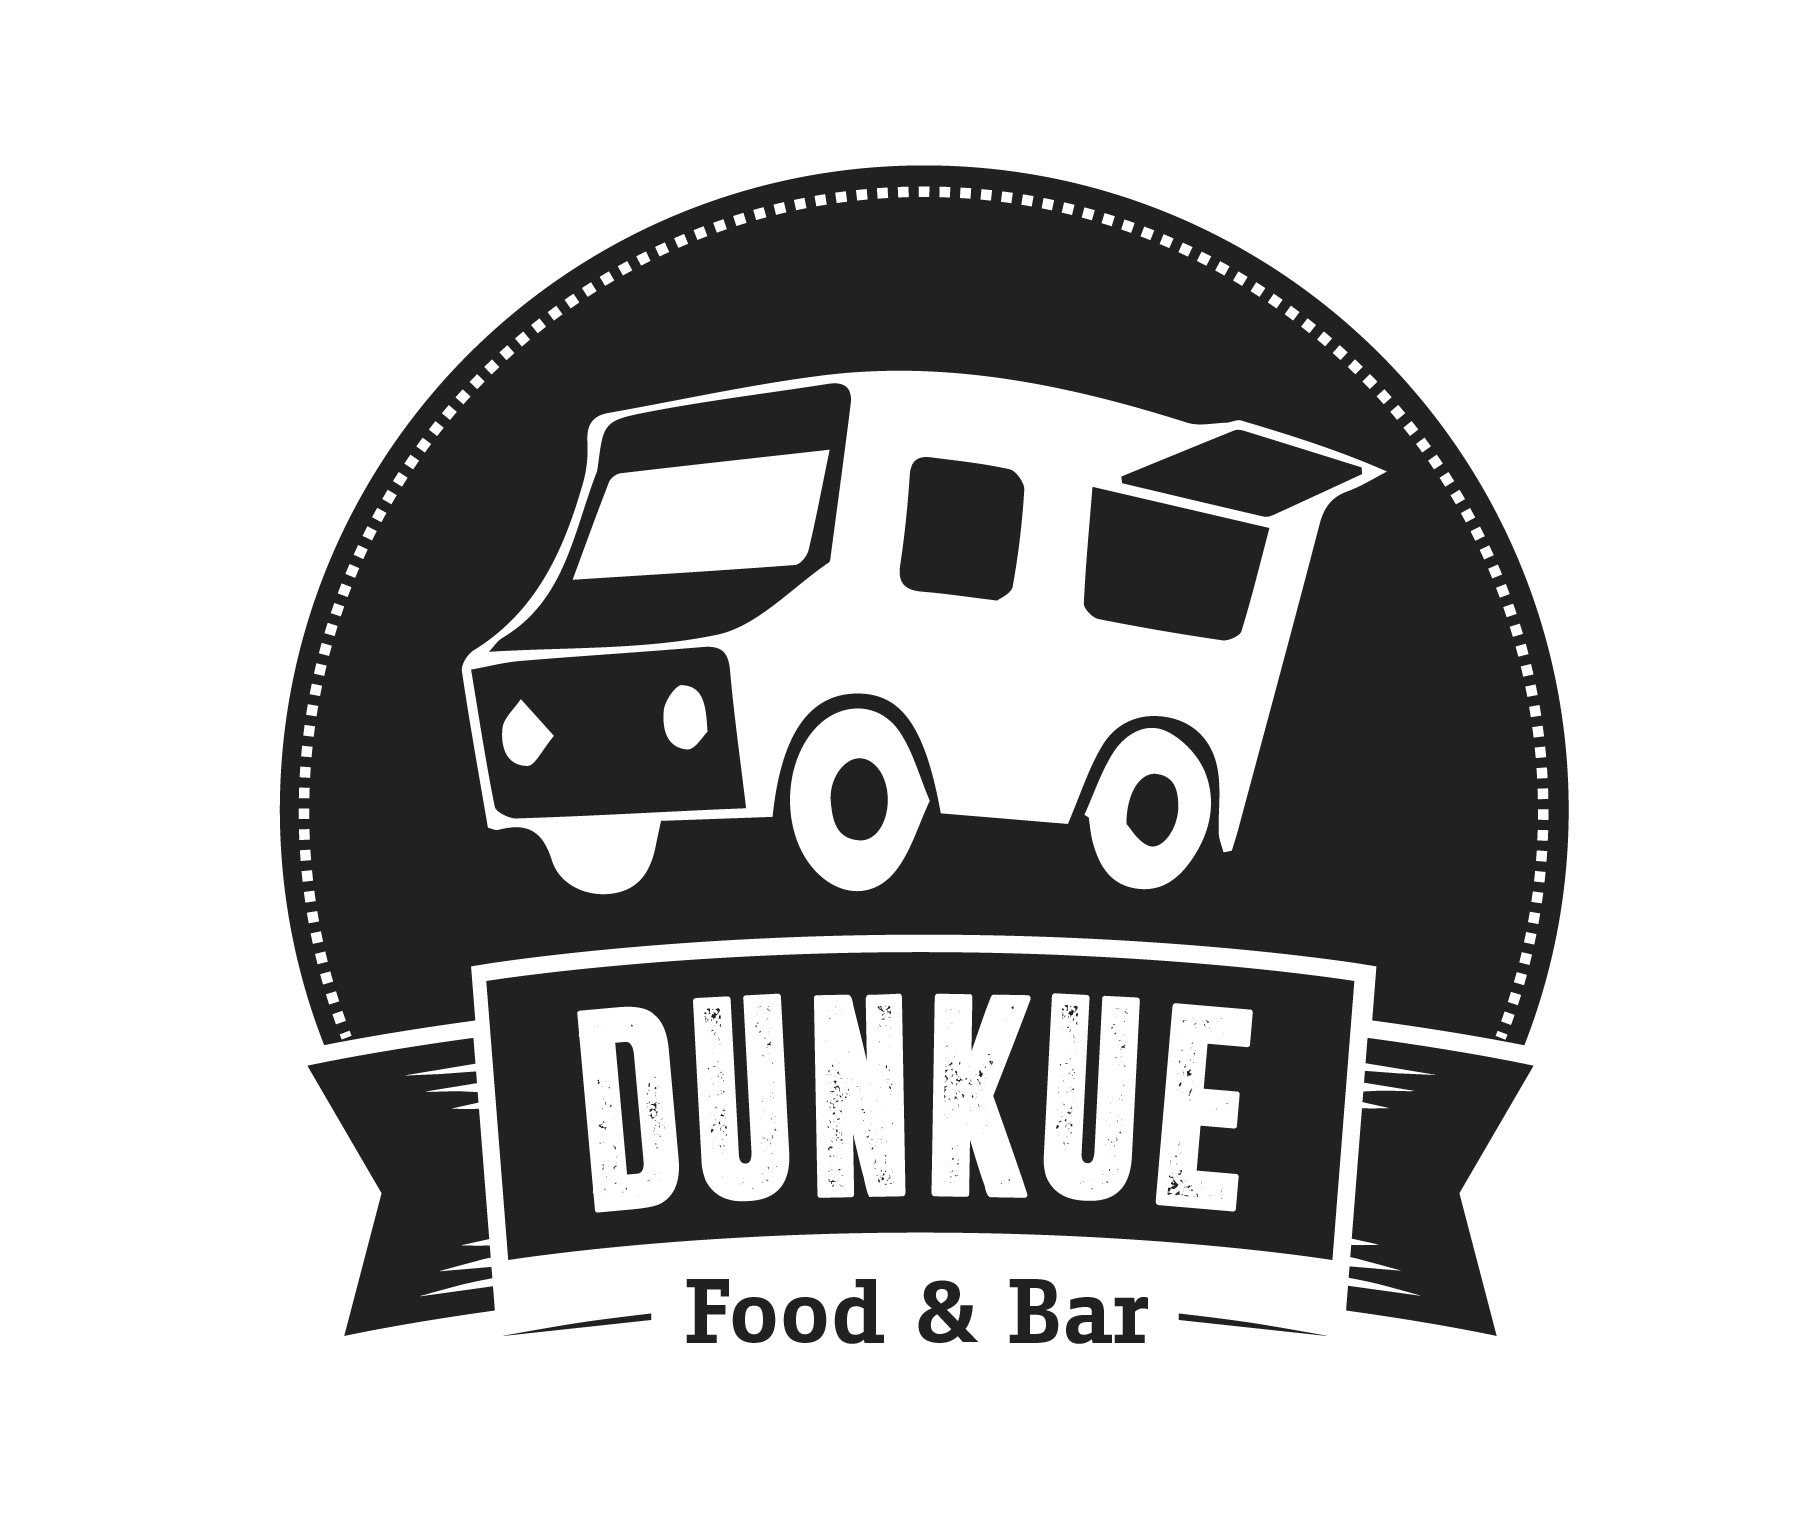 Dunkue food bar computrabajo argentina for 788 food bar argentina